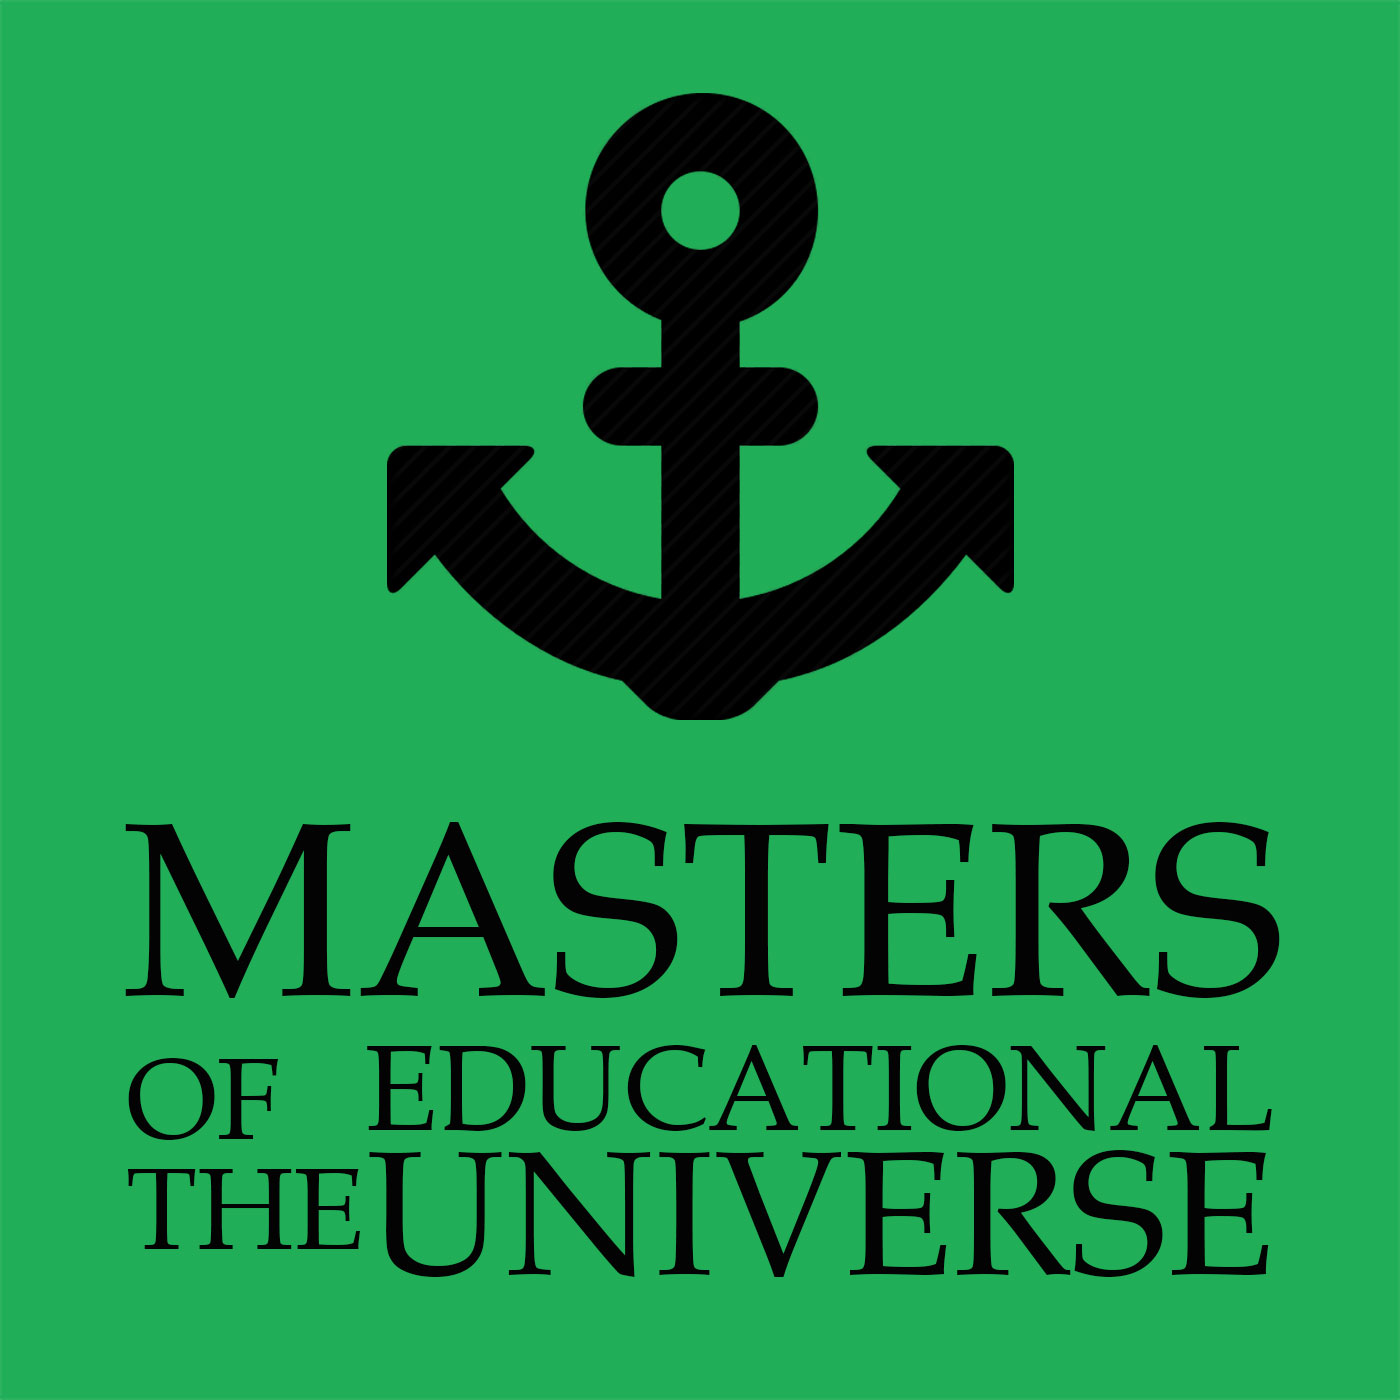 Masters of the Educational Universe